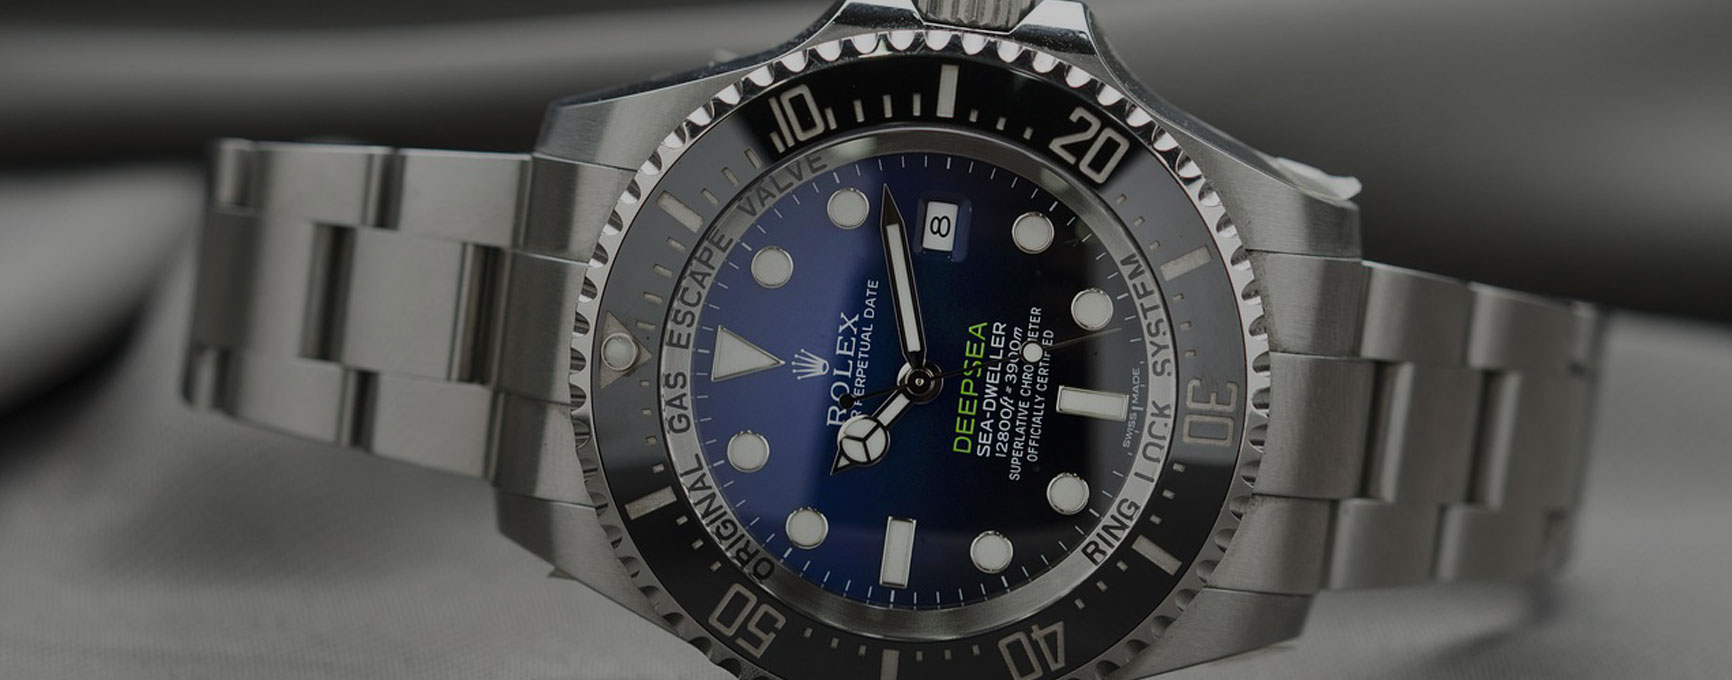 Silver exterior rolex watch with blue interior design and minimal green accents